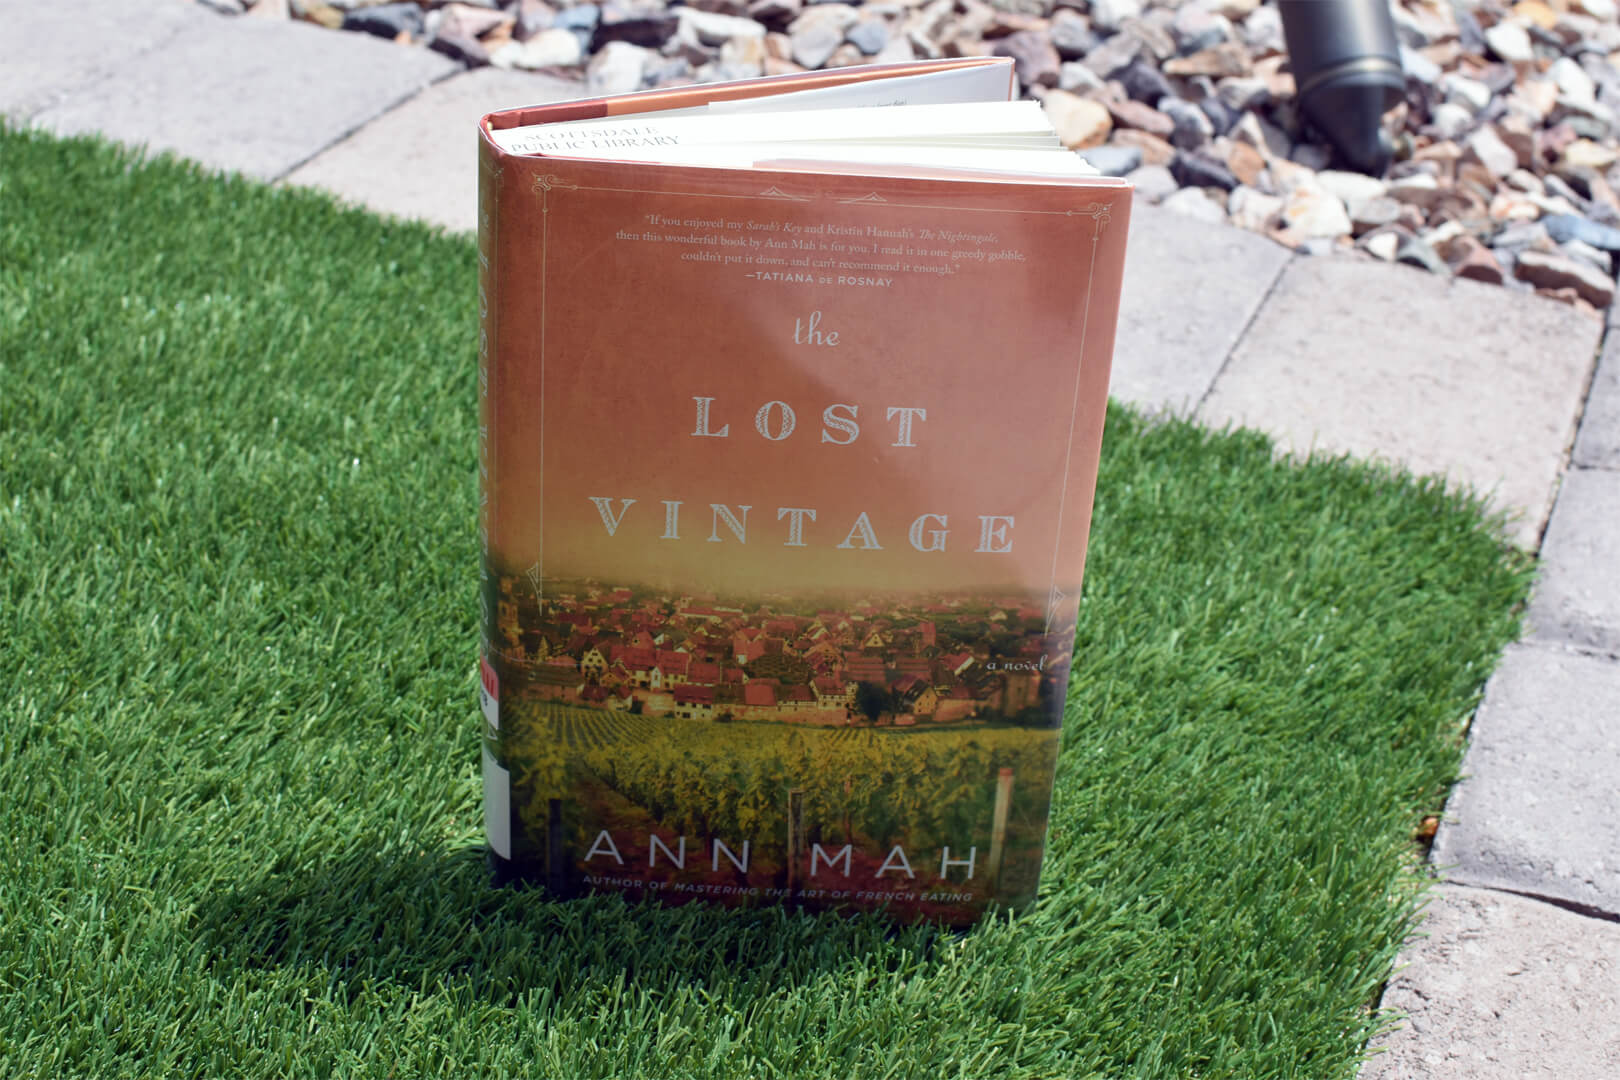 The Lost Vintage Review - Book Club Chat